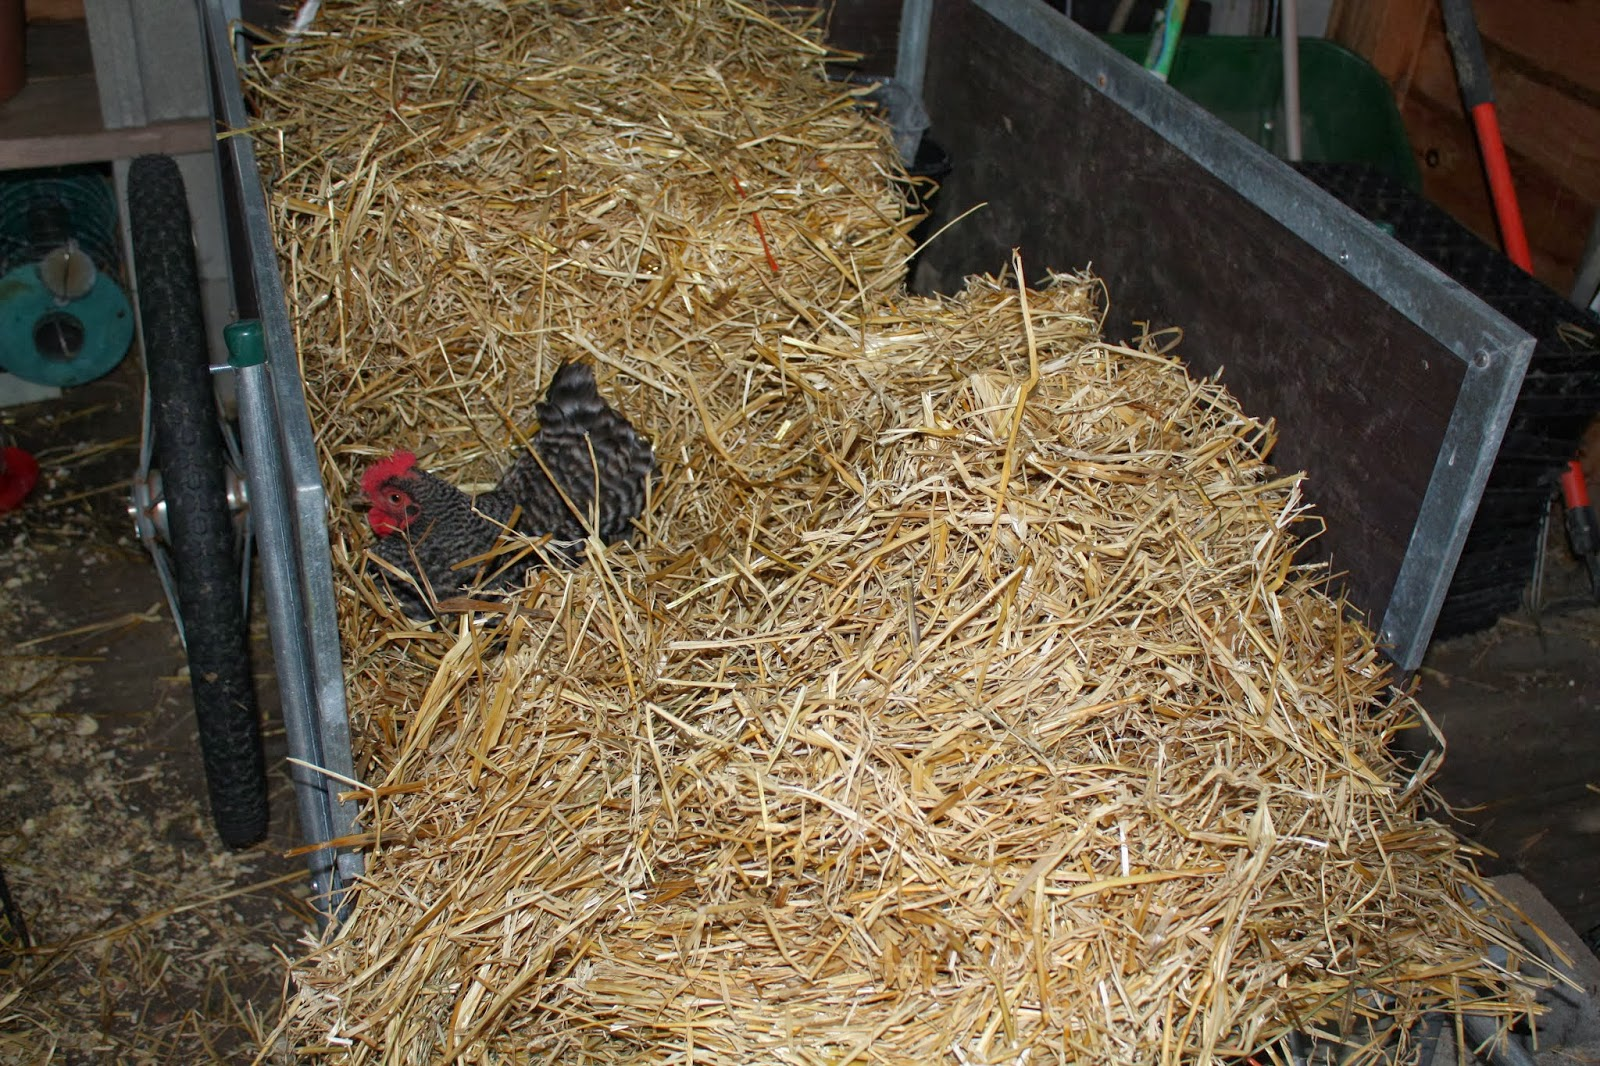 It Takes Some Convincing To Get The Chickens To Use The Tunnel Elliott,  Chicken Whisperer